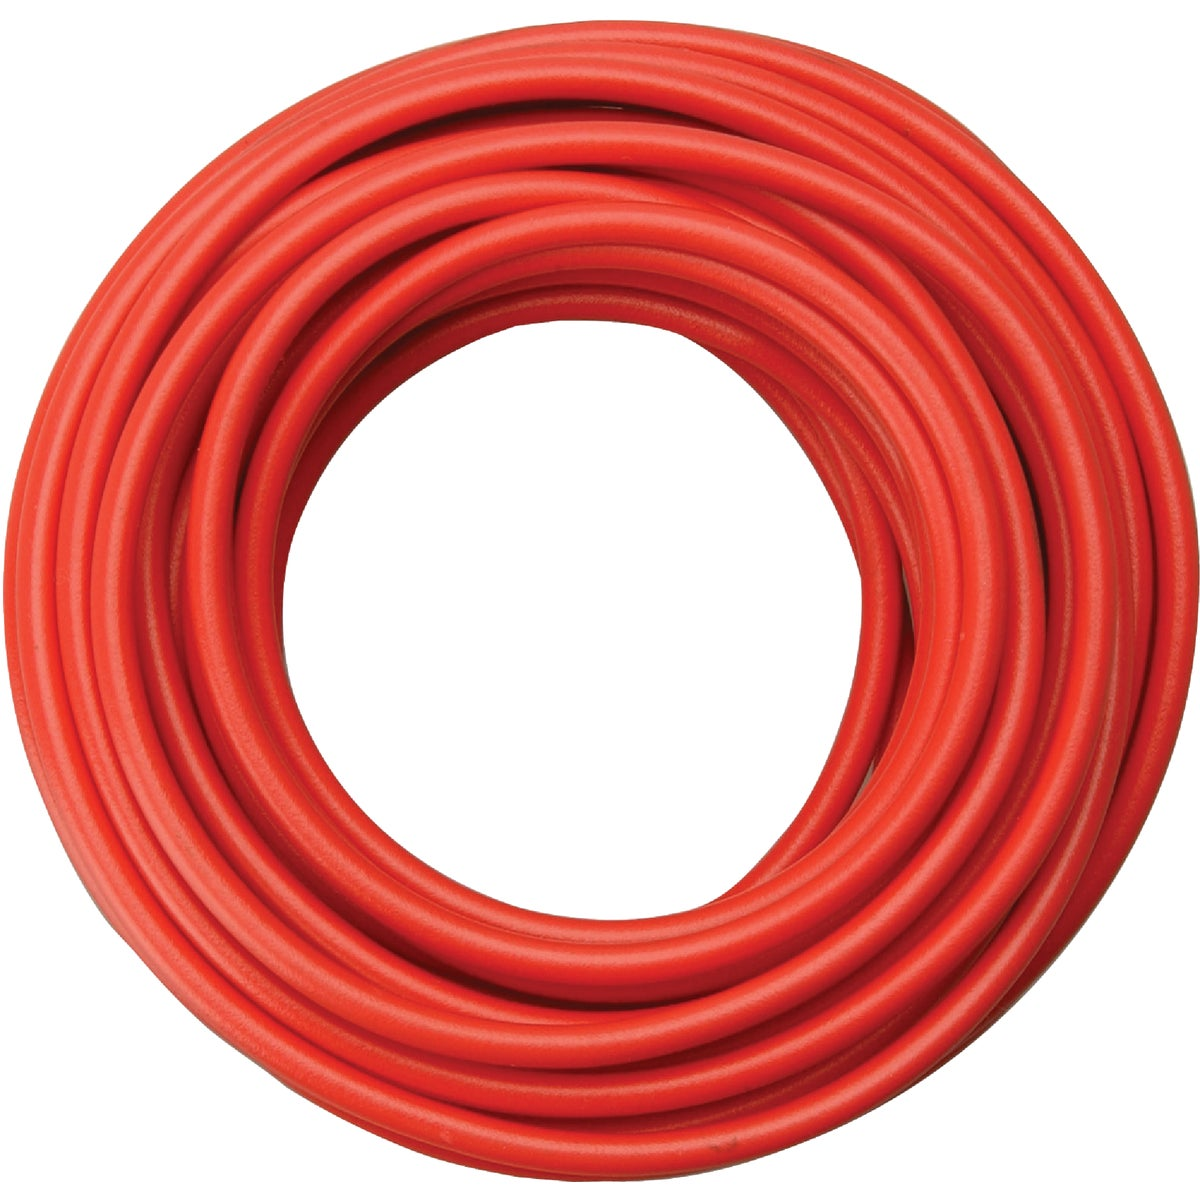 11' 12GA RED AUTO WIRE - 12-1-16 by Woods Wire Coleman